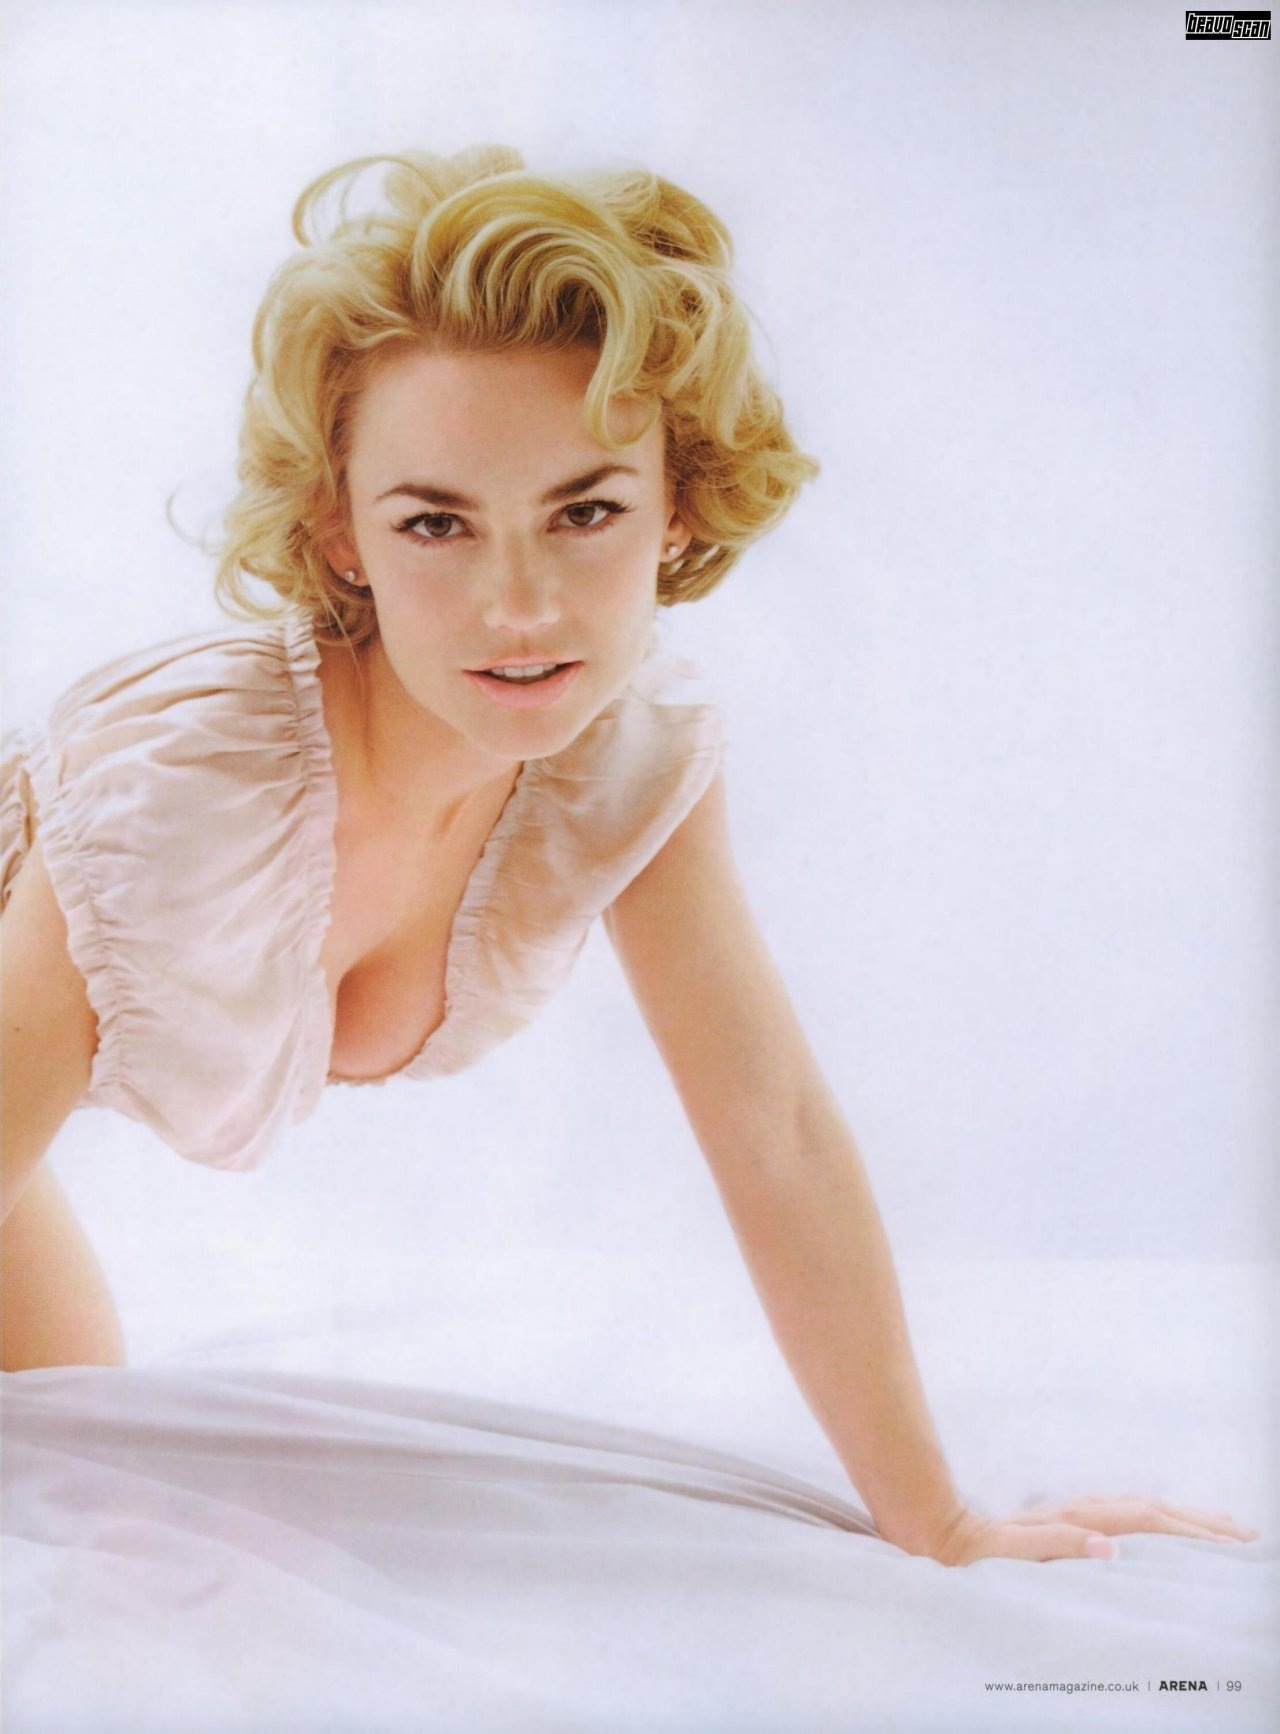 Kate winslet in the reader - 3 part 2